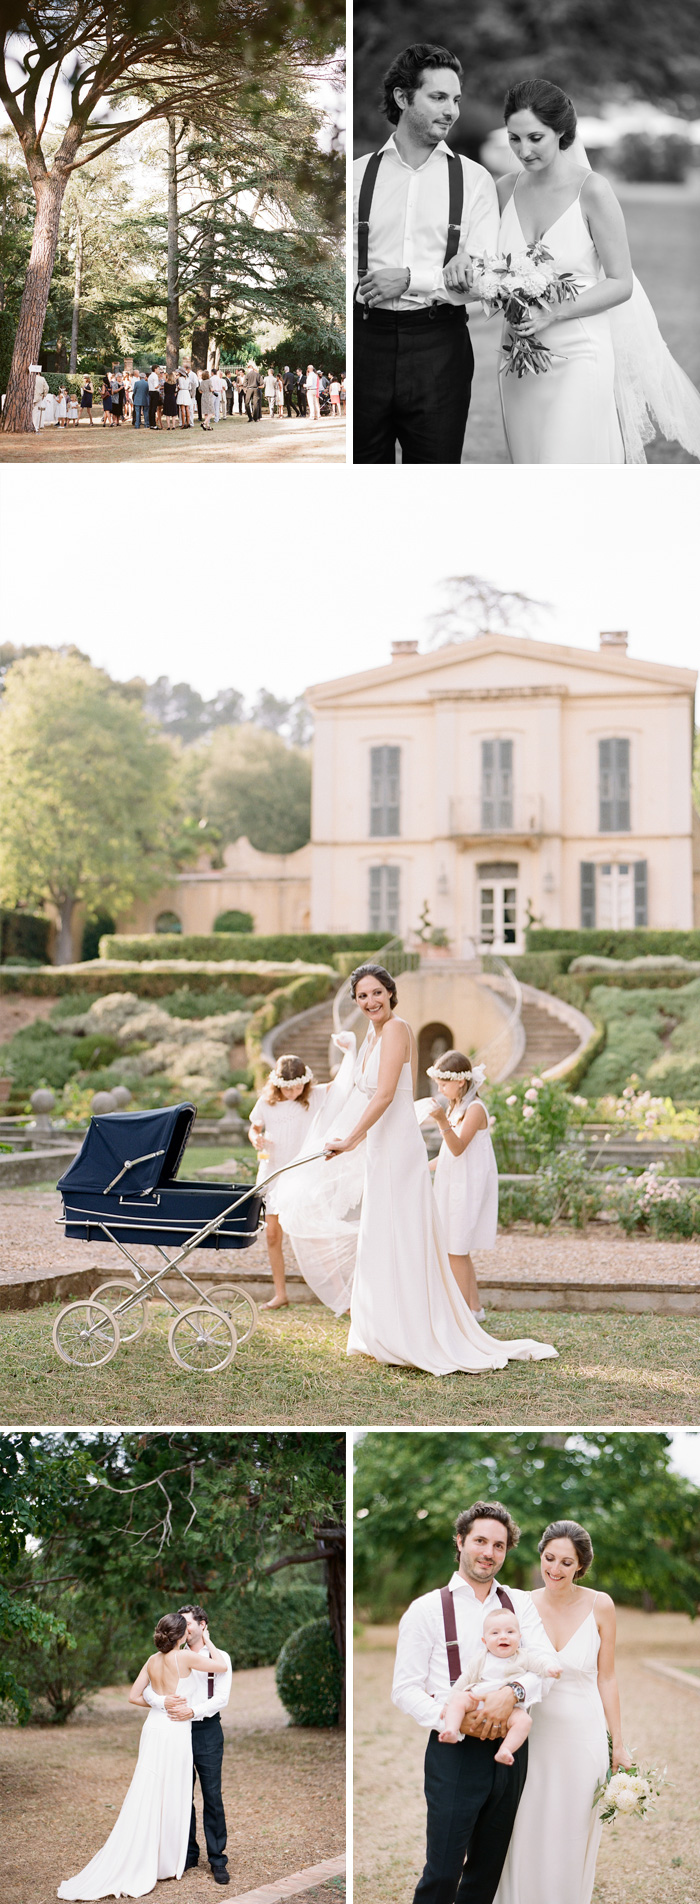 Amelie & Laurent spend a few moments alone with their son after the ceremony; Amelie pushes a vintage baby pram with the flower girls outside the chateau; photos by Sylvie Gil